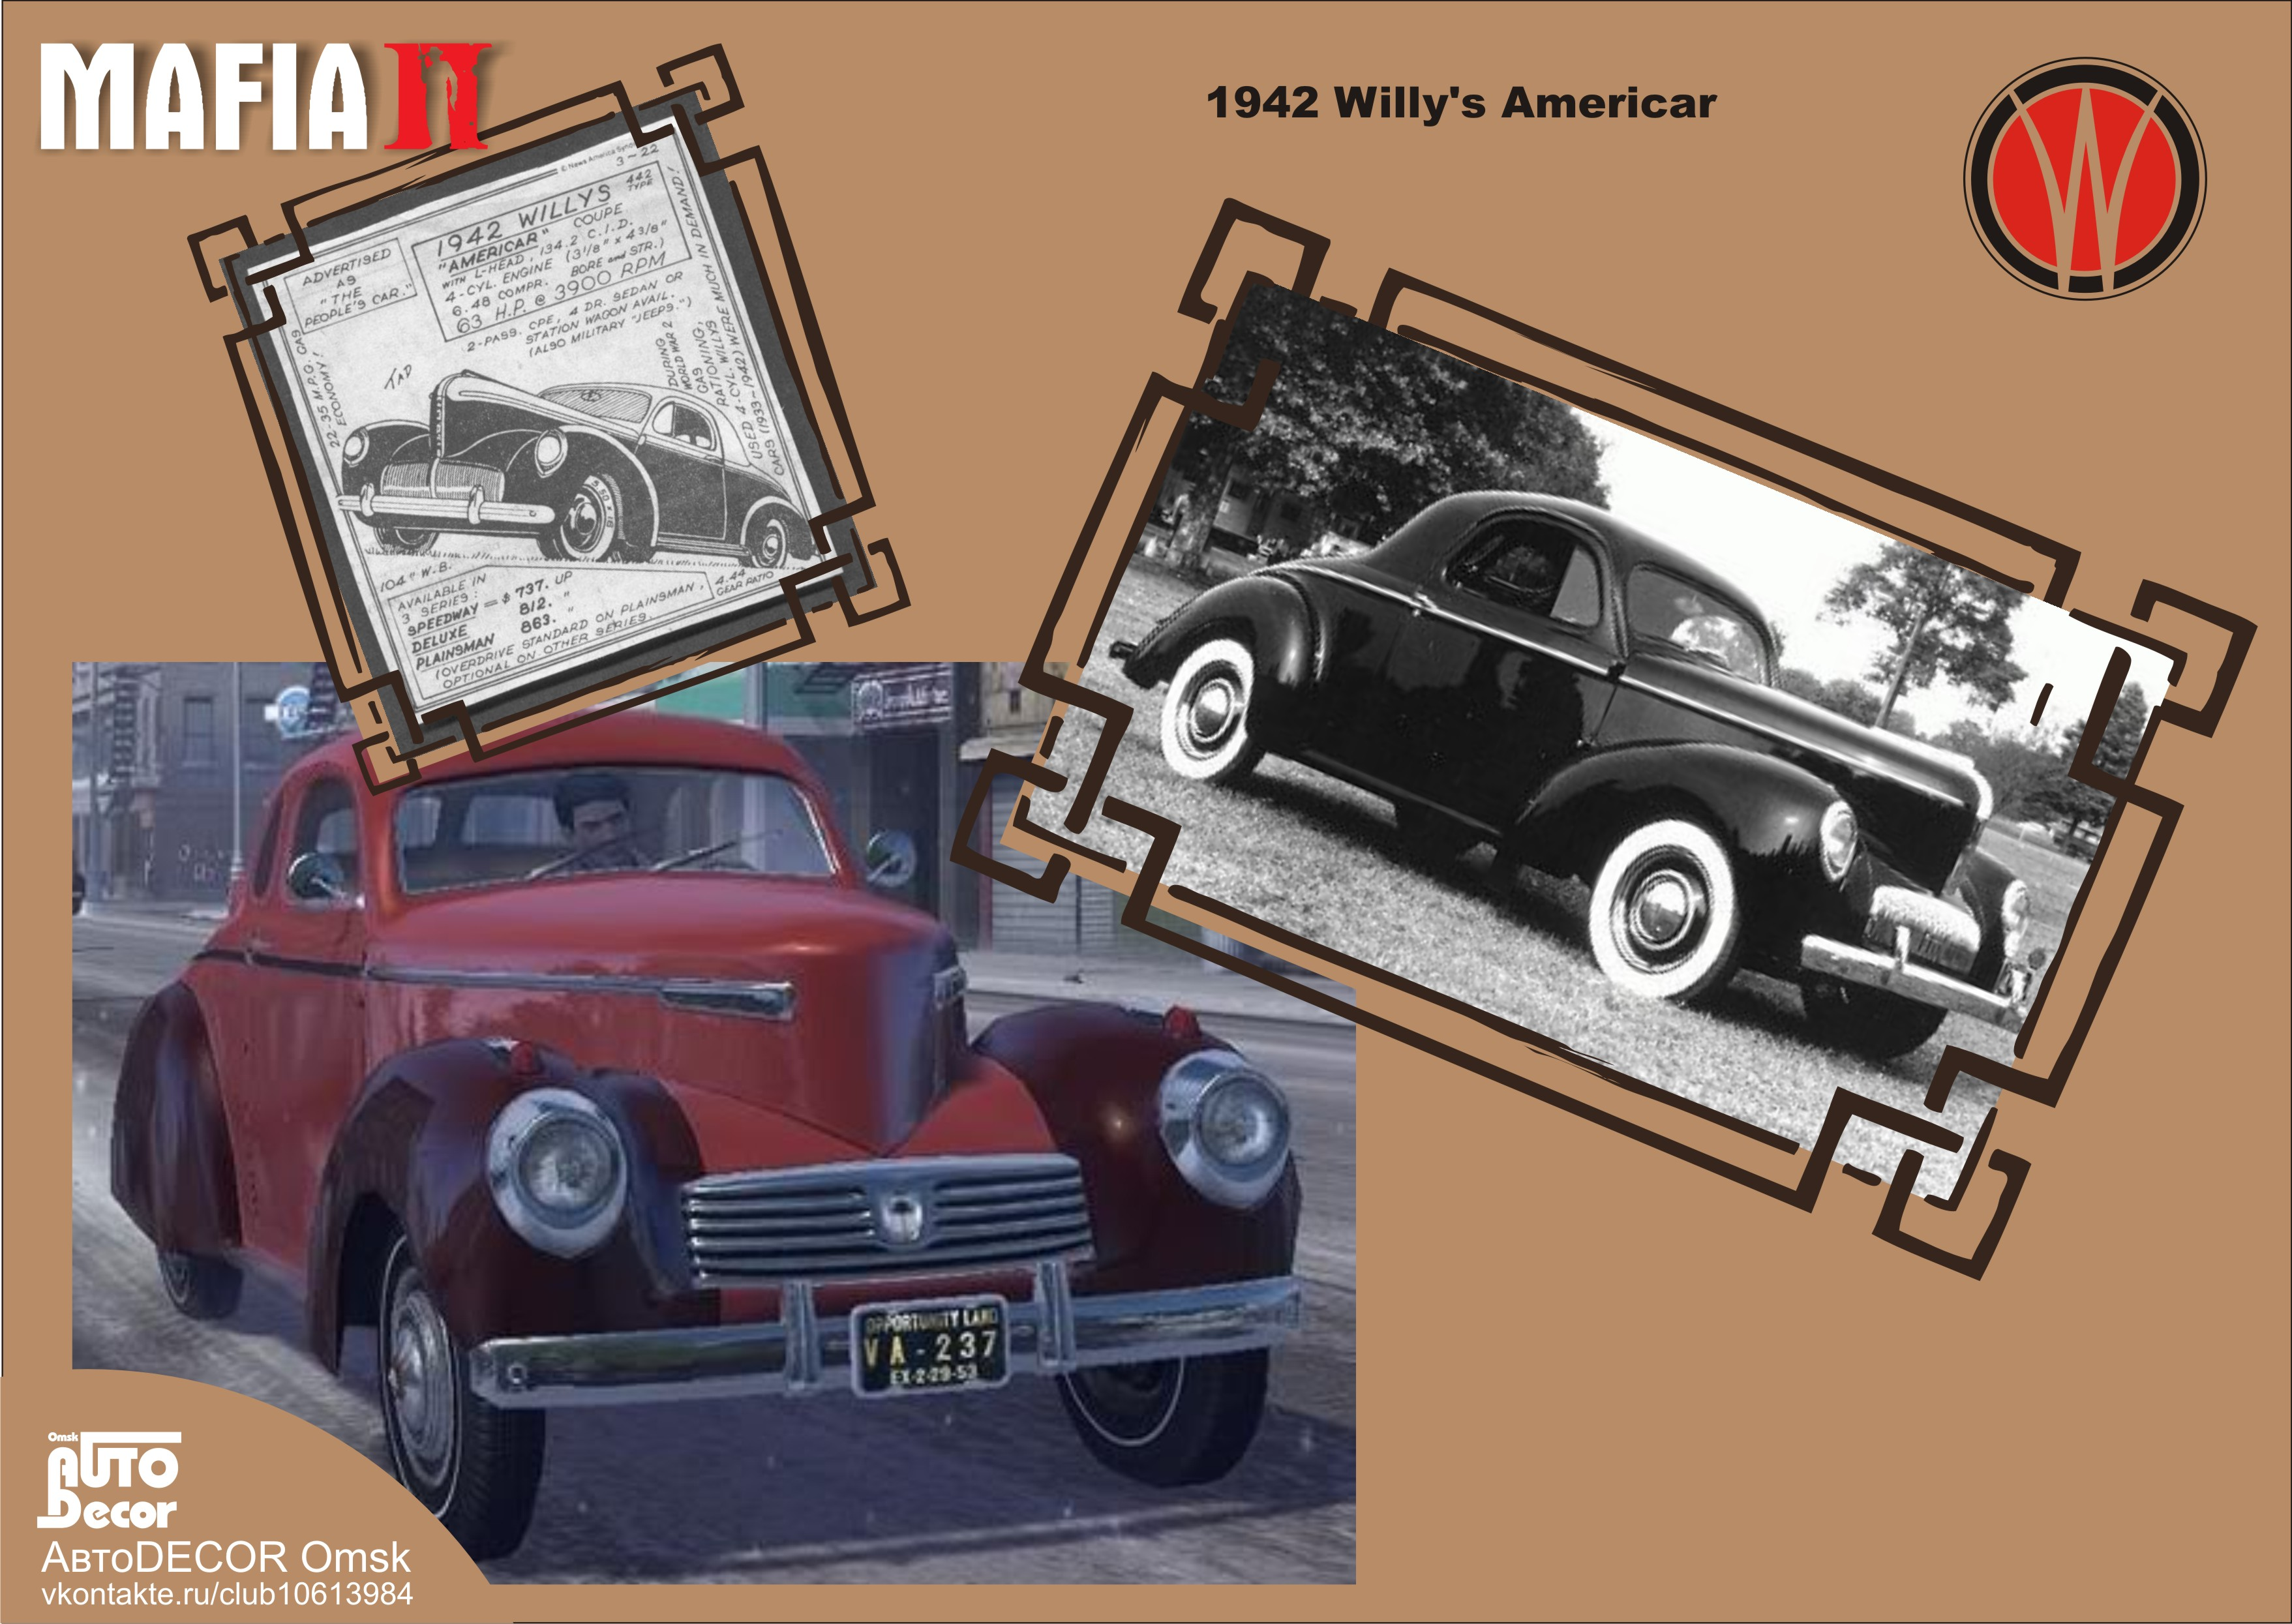 1942 Willy's Americar - Mafia 2